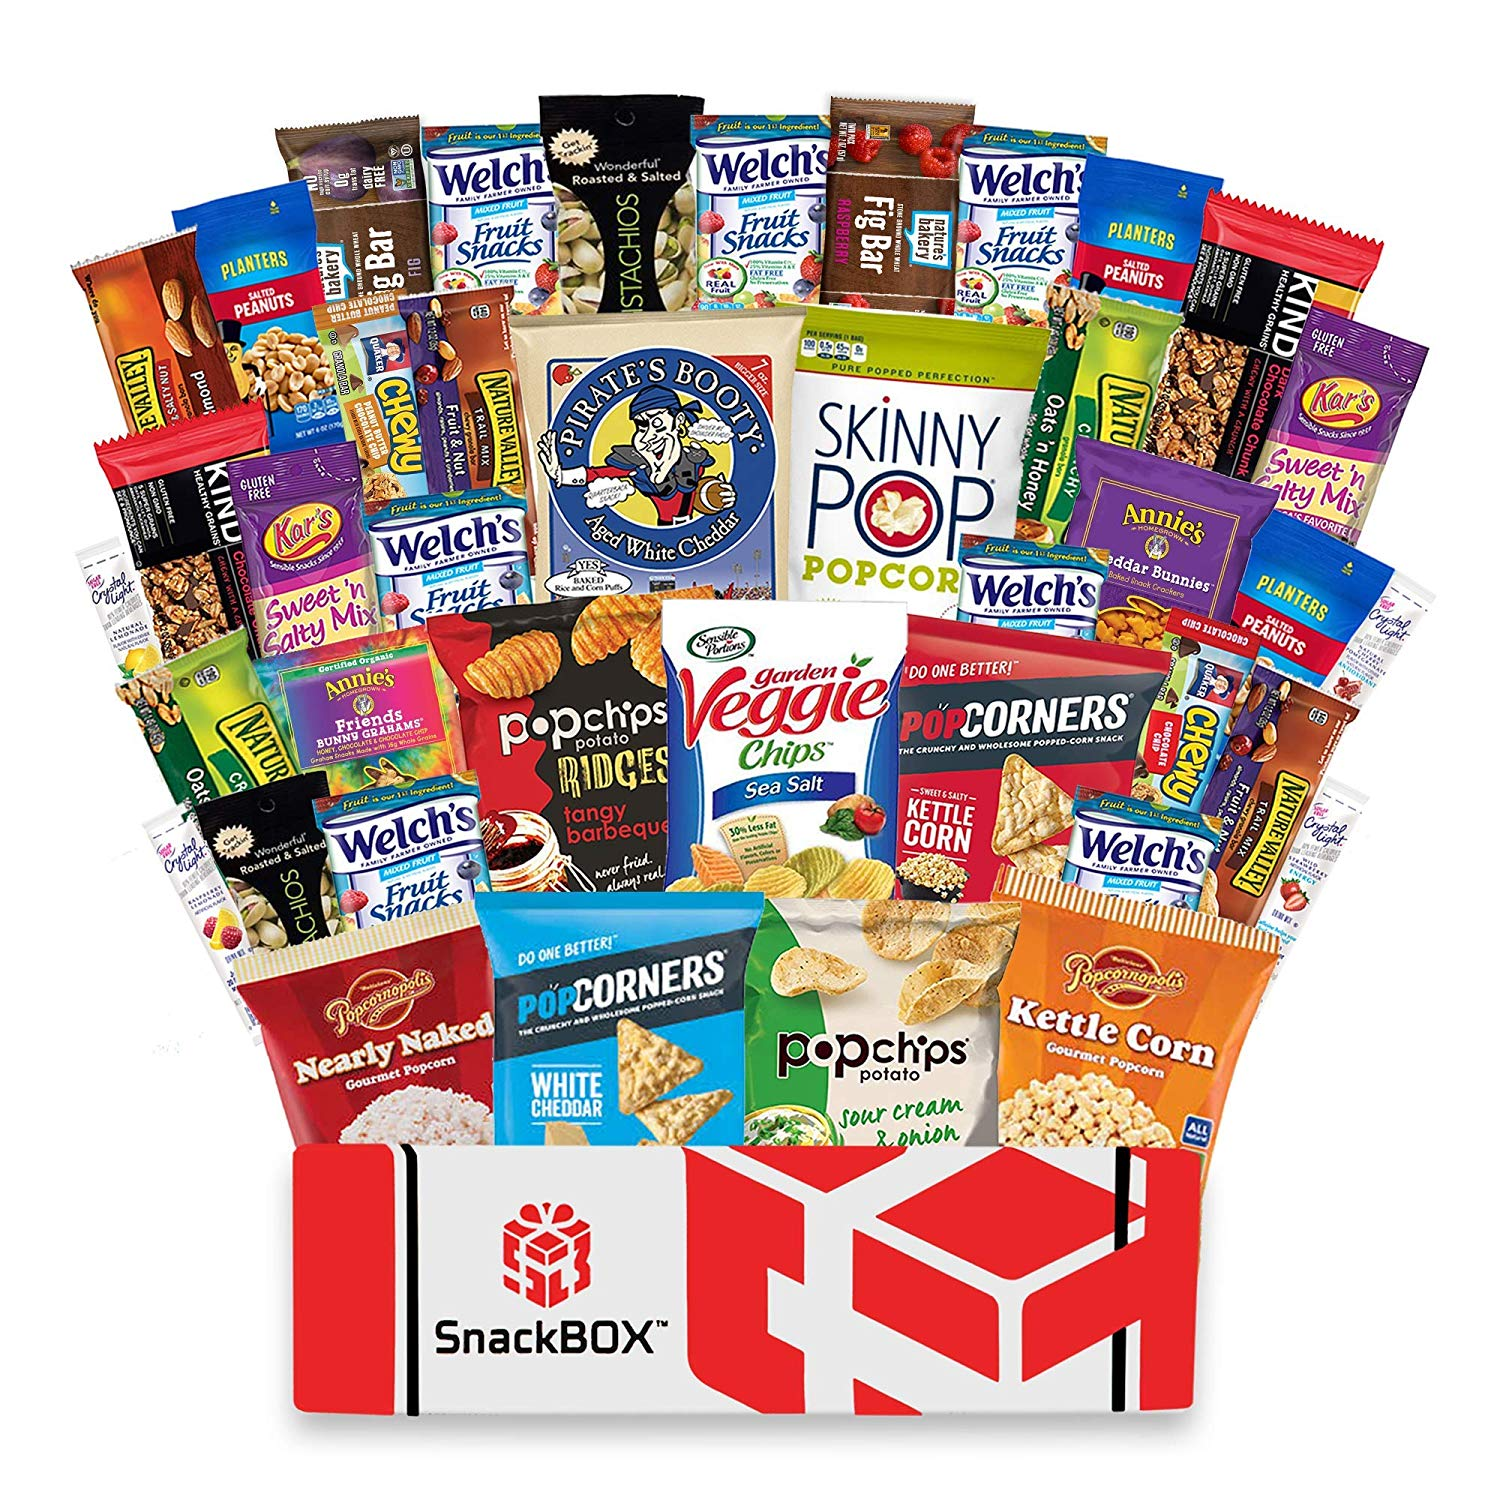 Healthy Snacks Care Package For College, Dorms, Military, Student, School, Camp, and Office | Gift Basket By SnackBOX  (40 Count)